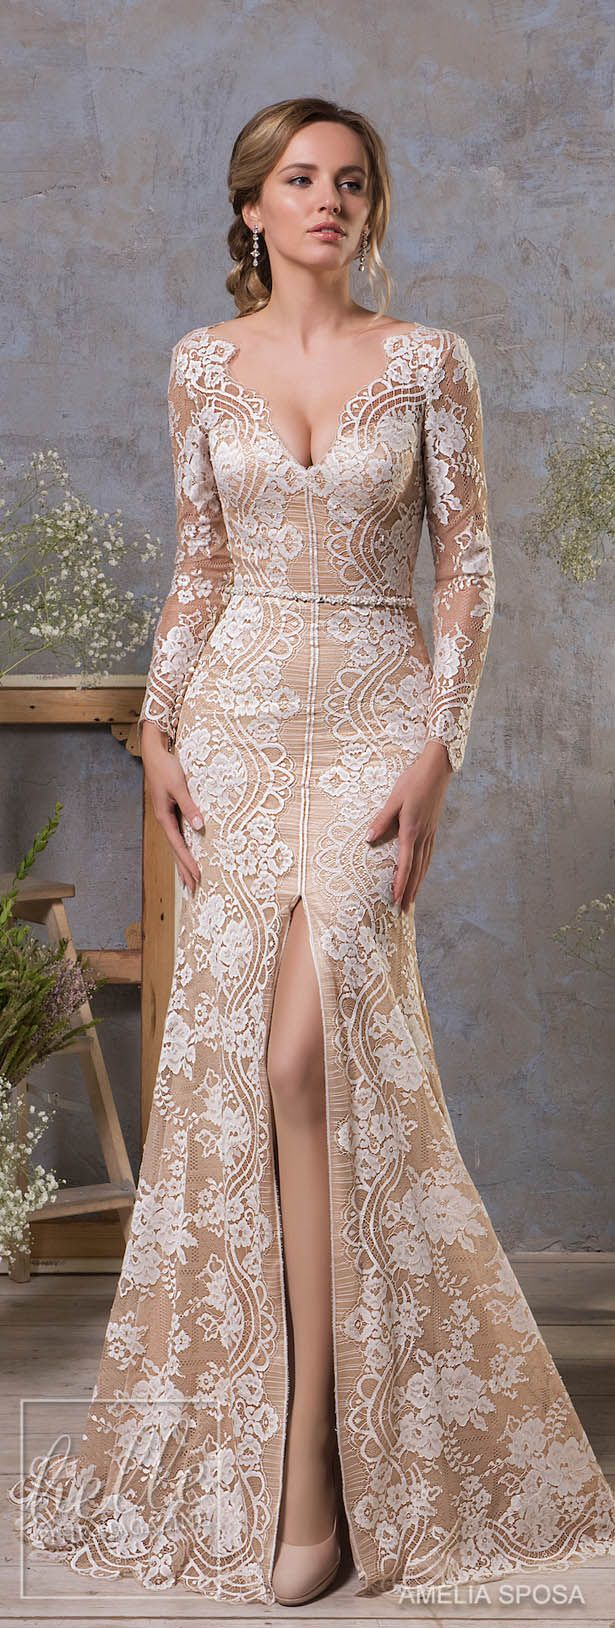 Amelia Sposa Fall 2018 Wedding Dresses - Long sleeve lace bridal gown #weddingdress #bridalgown #bridal #weddinggown #bridalcouture